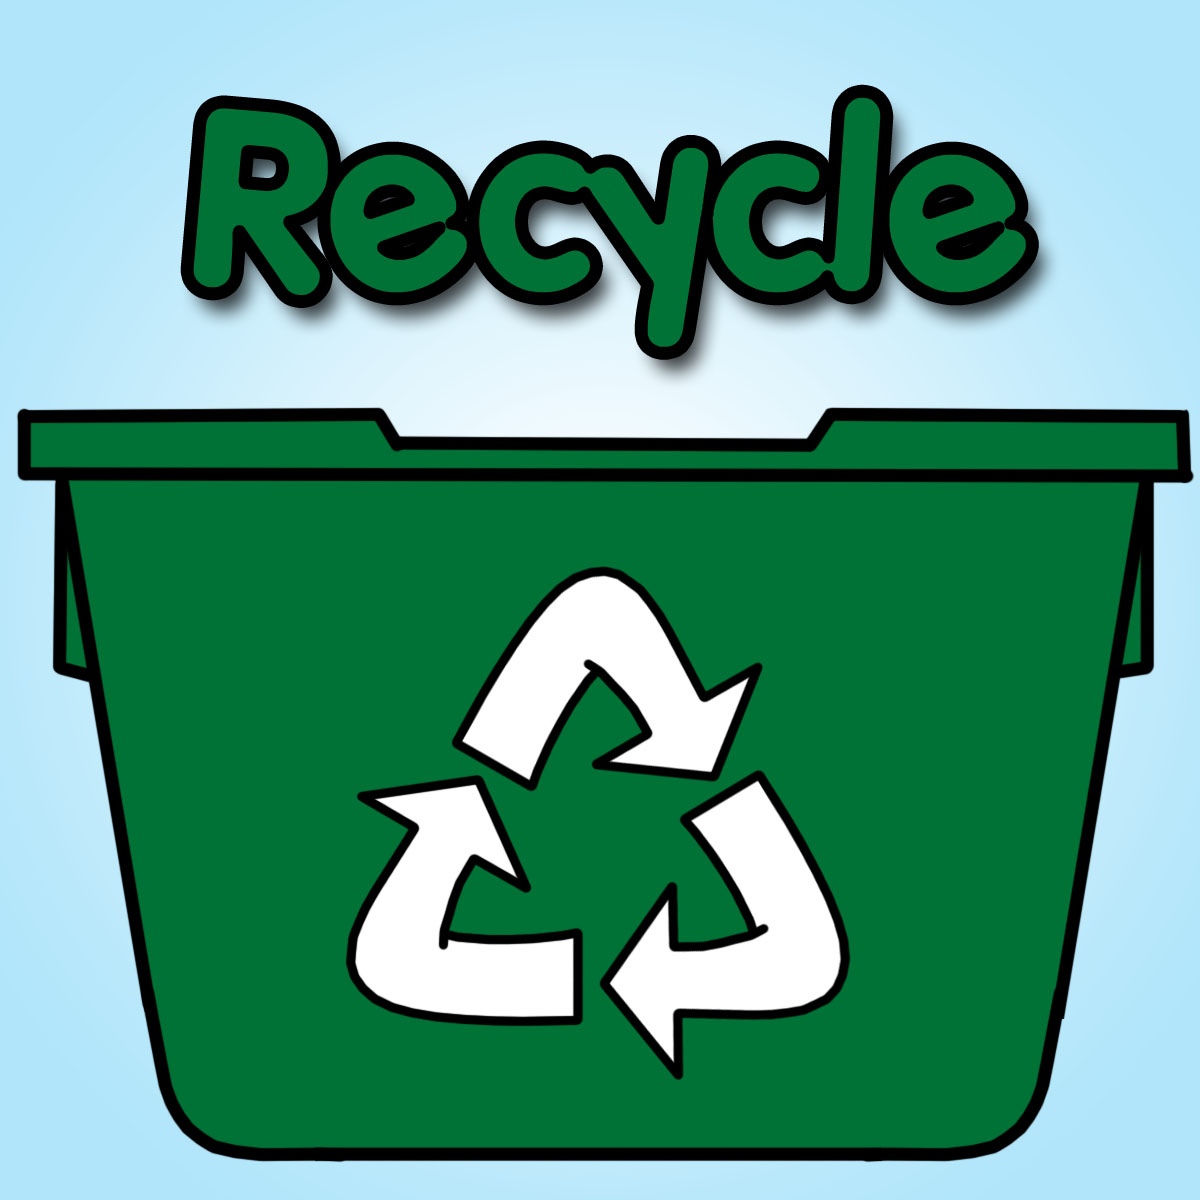 2b 2b Recycling Symbol On Plastic Bottles And Containers